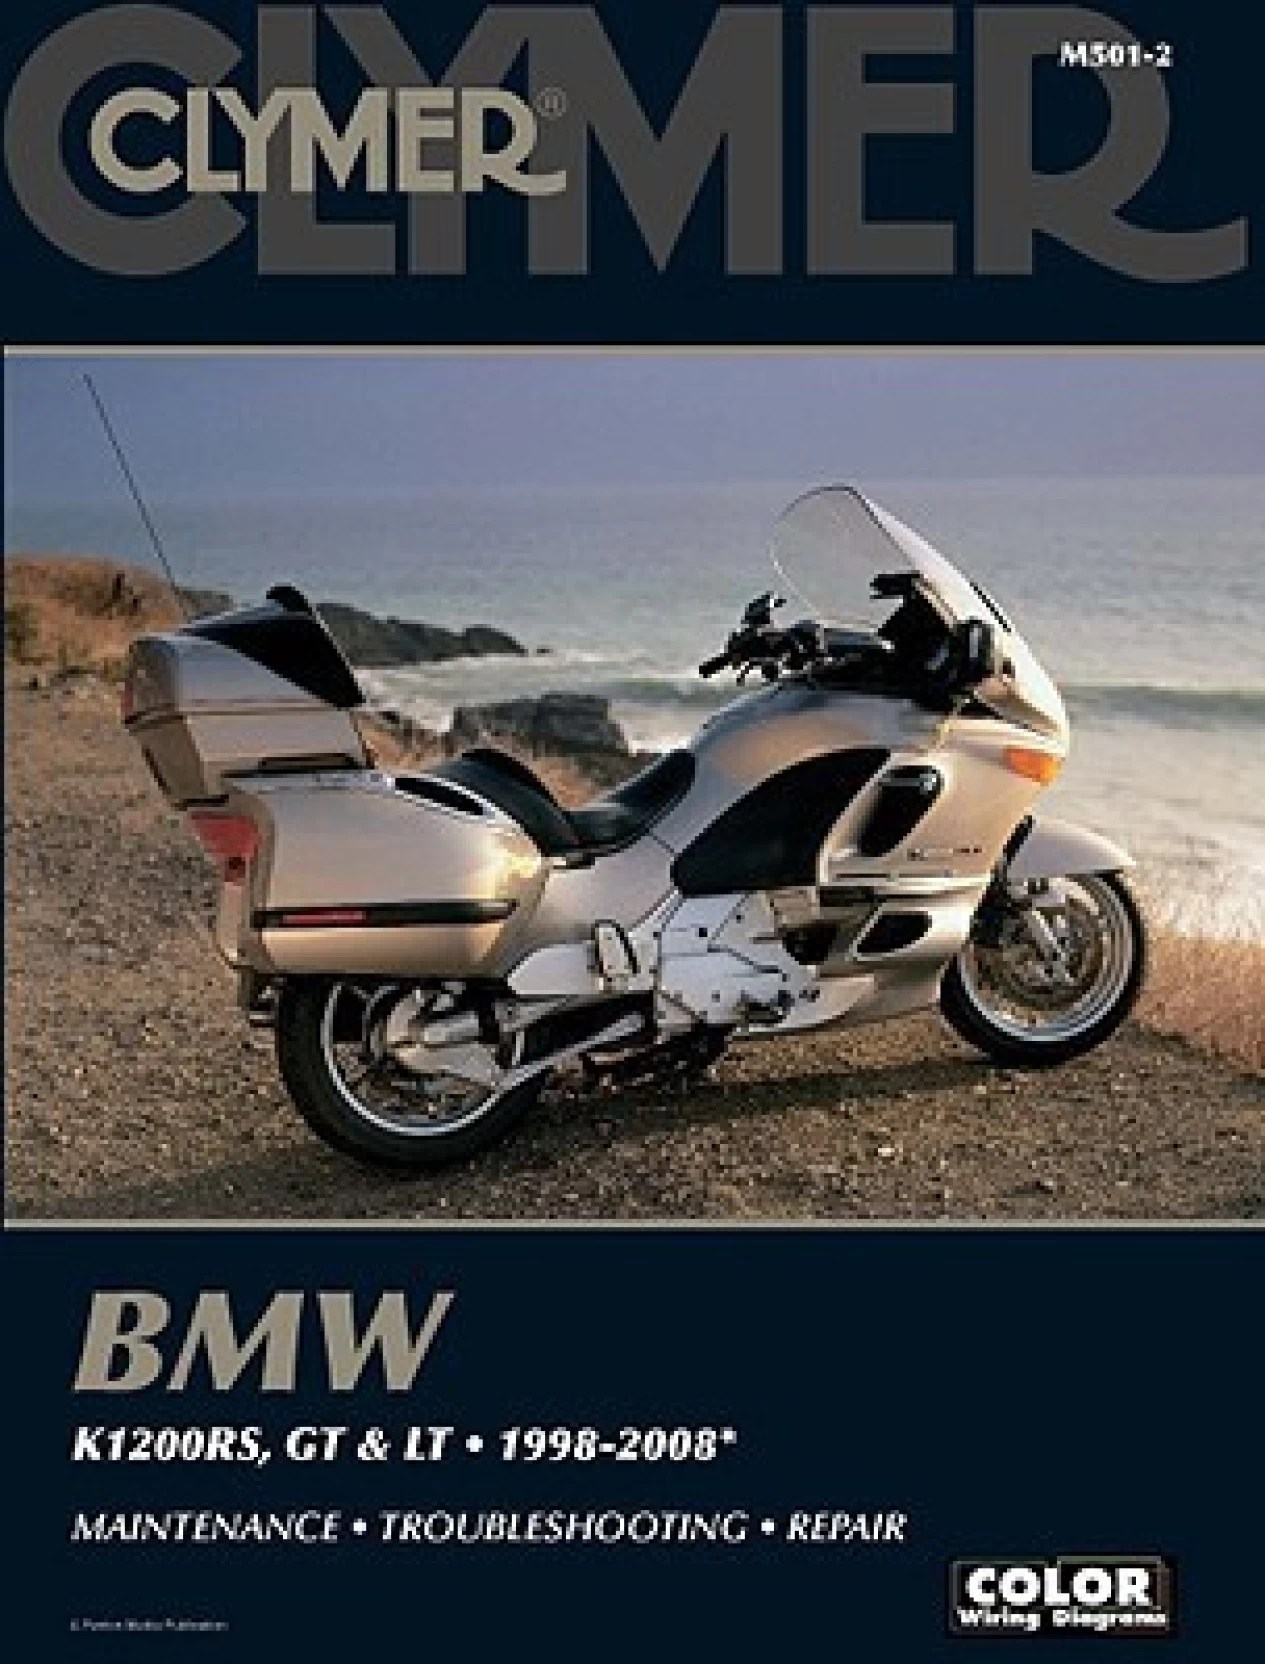 bmw k1200rs gt lt 1998 2008 clymer color wiring diagrams english paperback james grooms  [ 1265 x 1664 Pixel ]